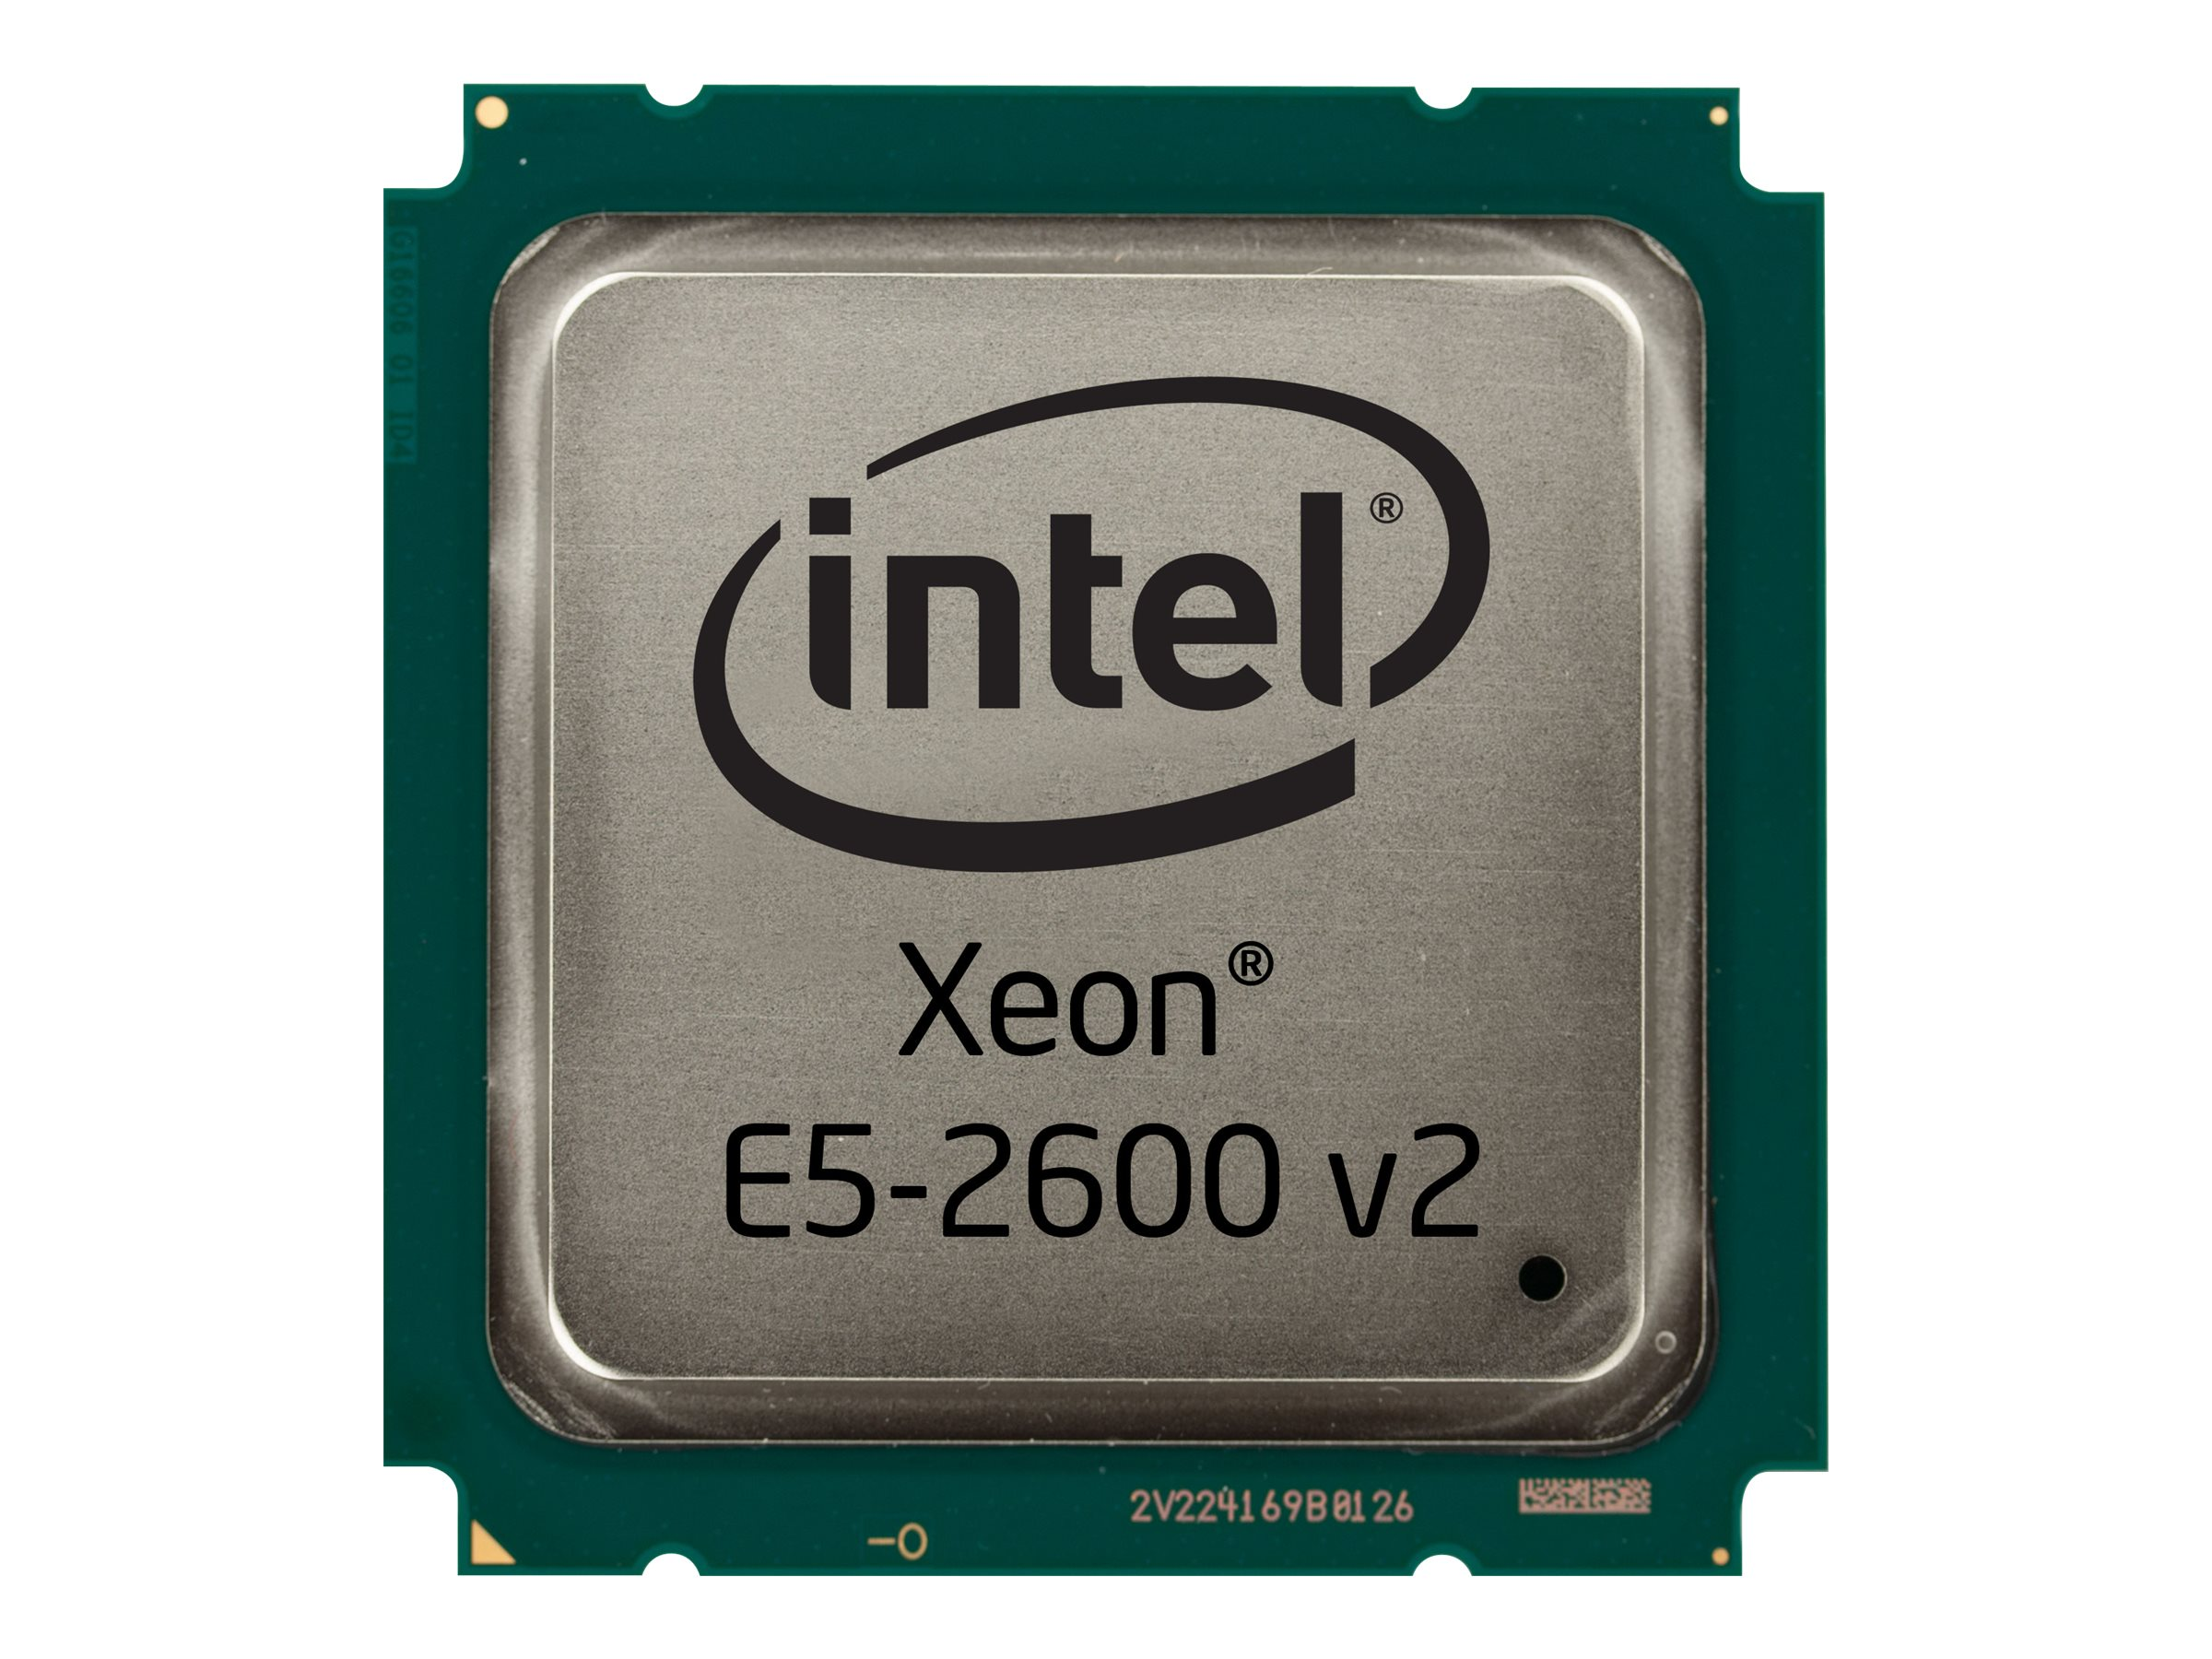 Intel Processor, Xeon QC E5-2609 v2 2.5GHz 10MB 80W, Box